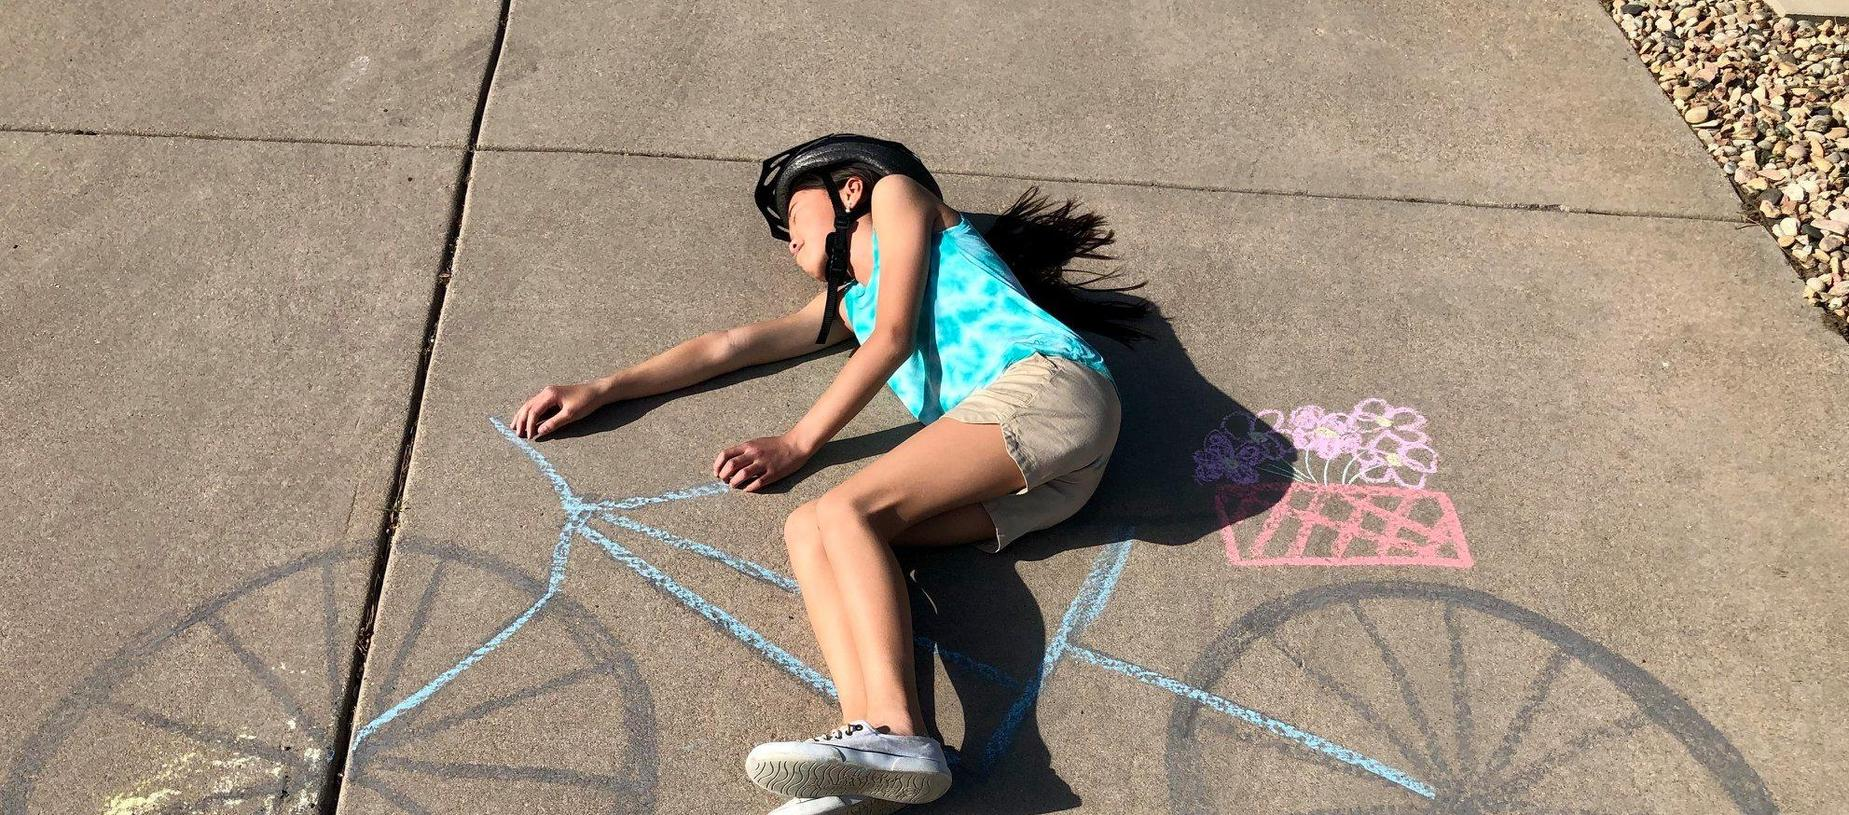 Student with Chalk Art Bicycle